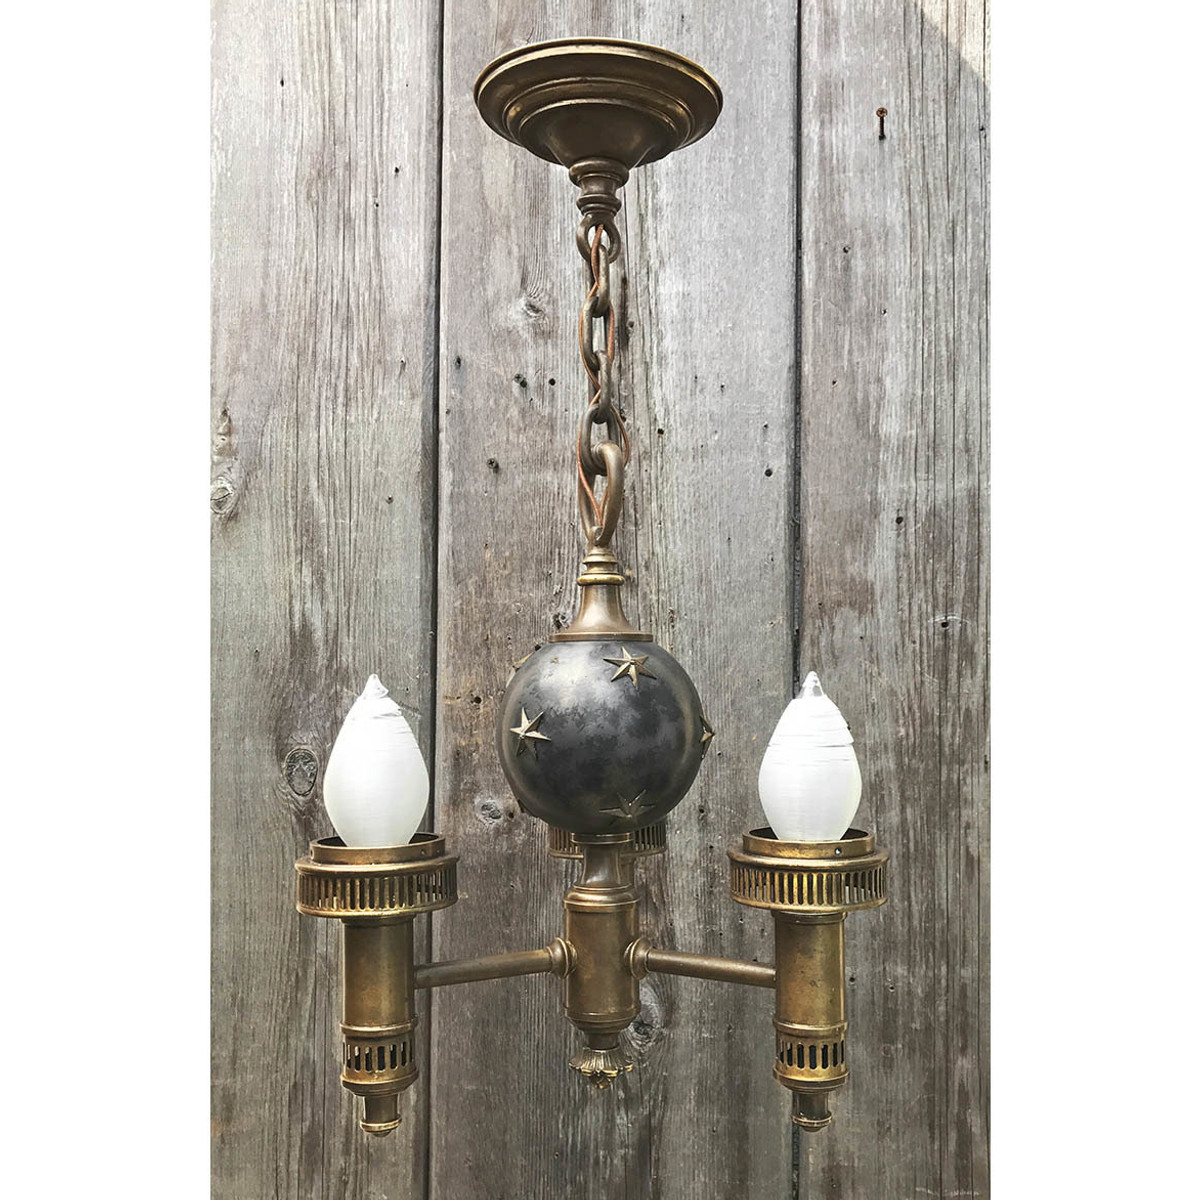 L17101 - Antique Three Arm Colonial Revival Style Fixture